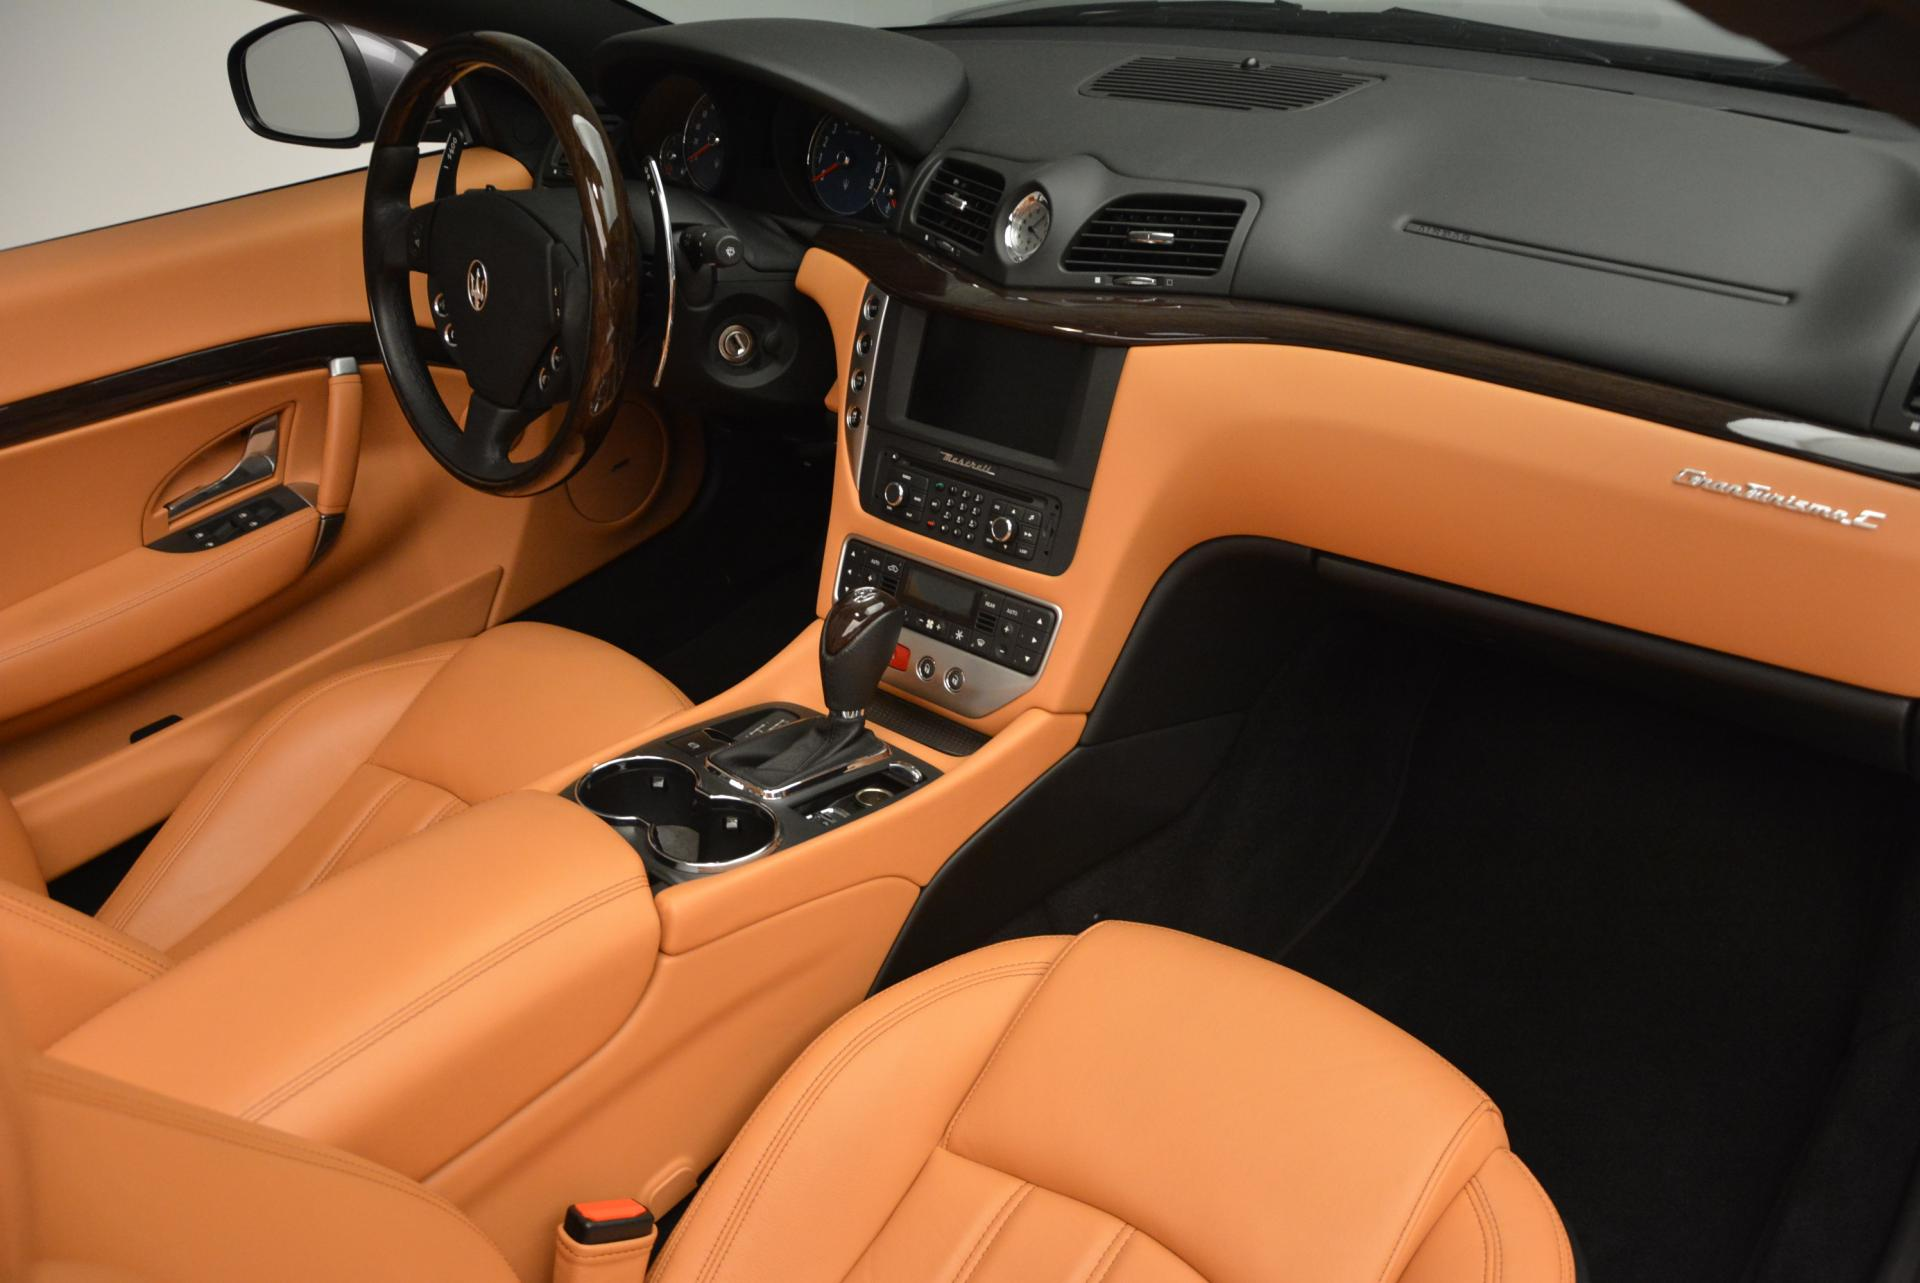 Used 2012 Maserati GranTurismo  For Sale In Westport, CT 161_p25